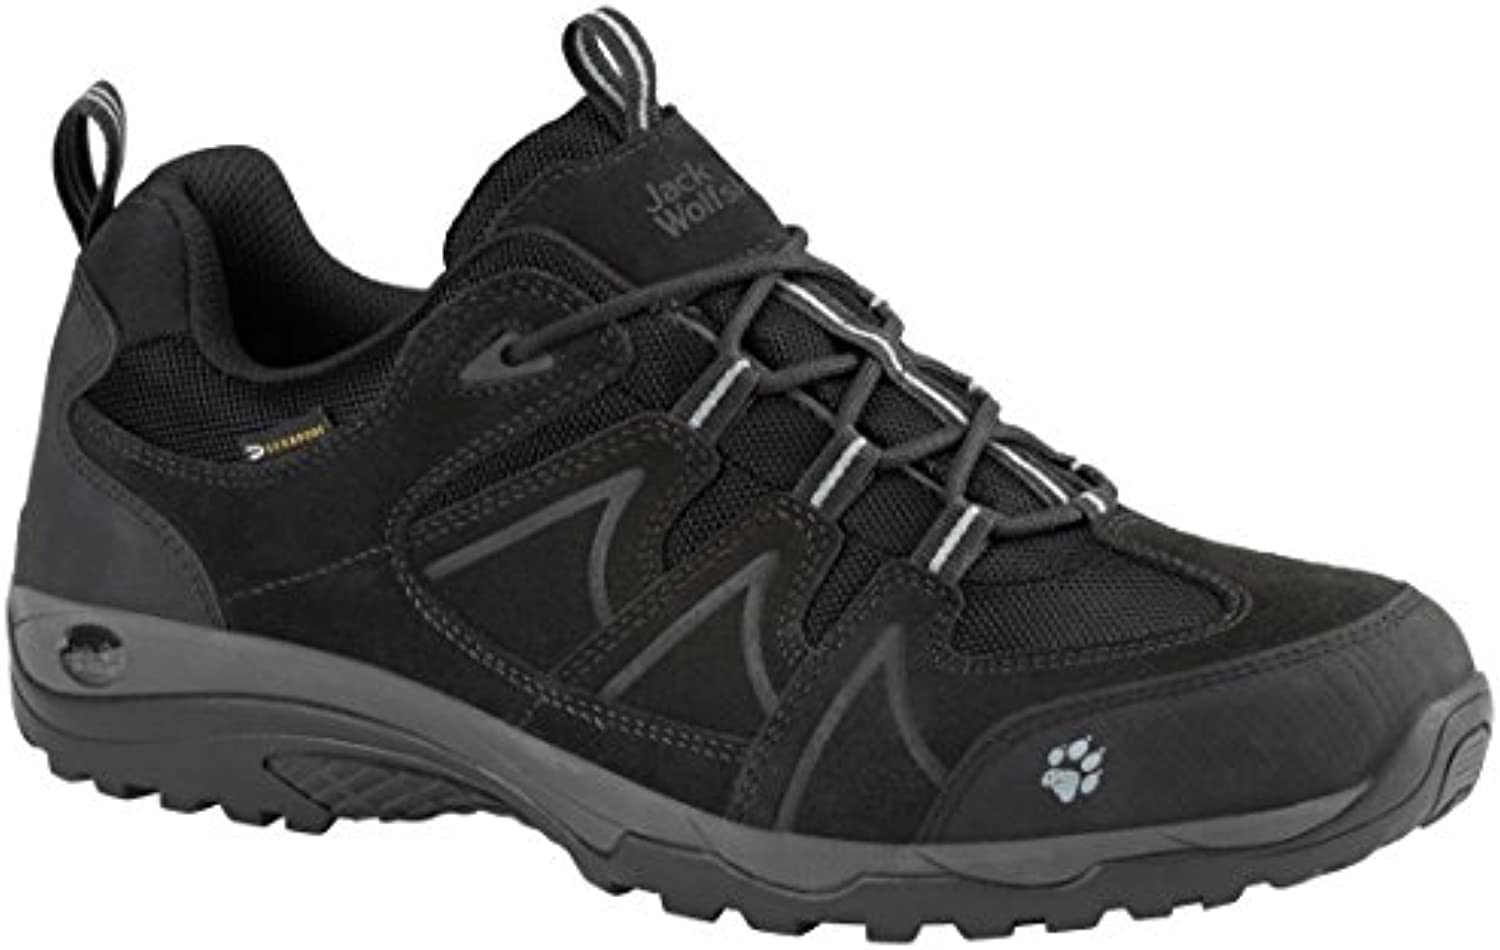 02e092ca84 jack wolfskin faible texapore traction hommes   eacute  chaussures ...